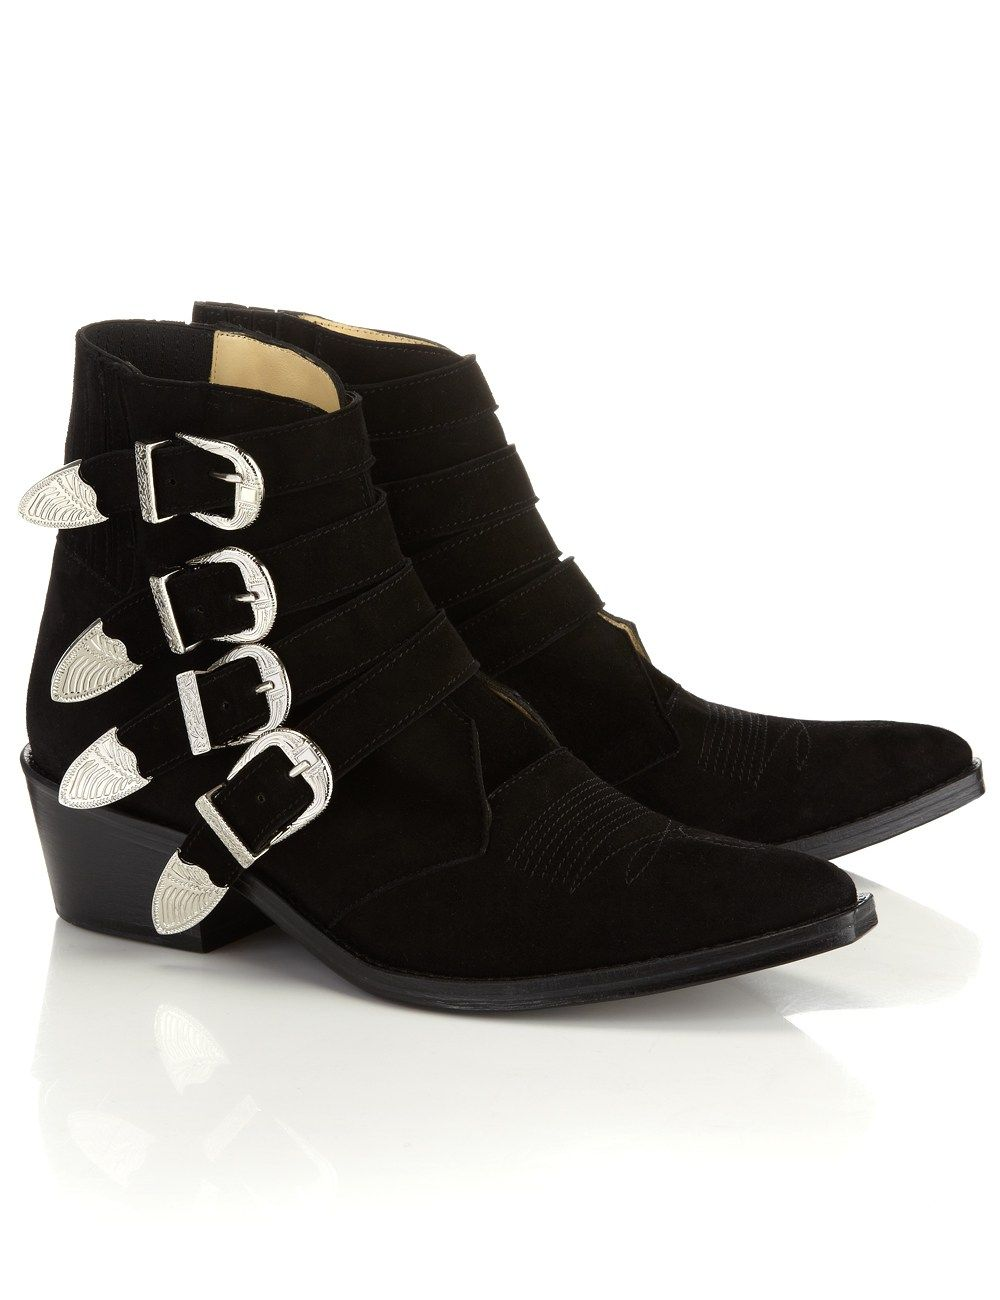 countdown package sale online Toga Pulla Suede Ankle Boots affordable cheap price outlet shop offer Y38kax